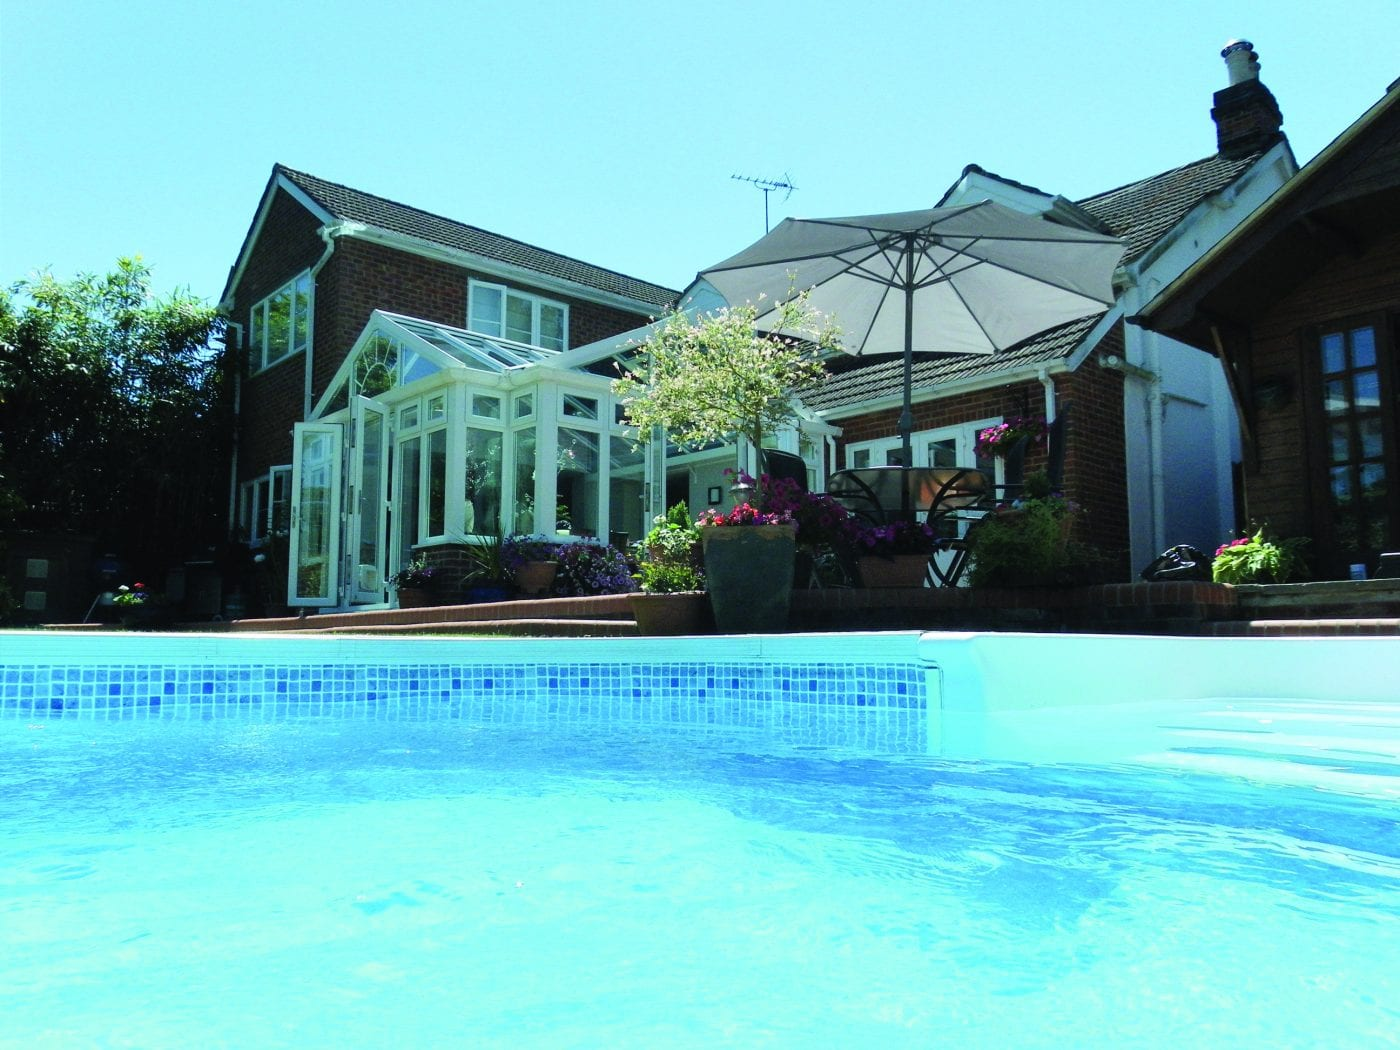 Outdoor tiled swimming pool